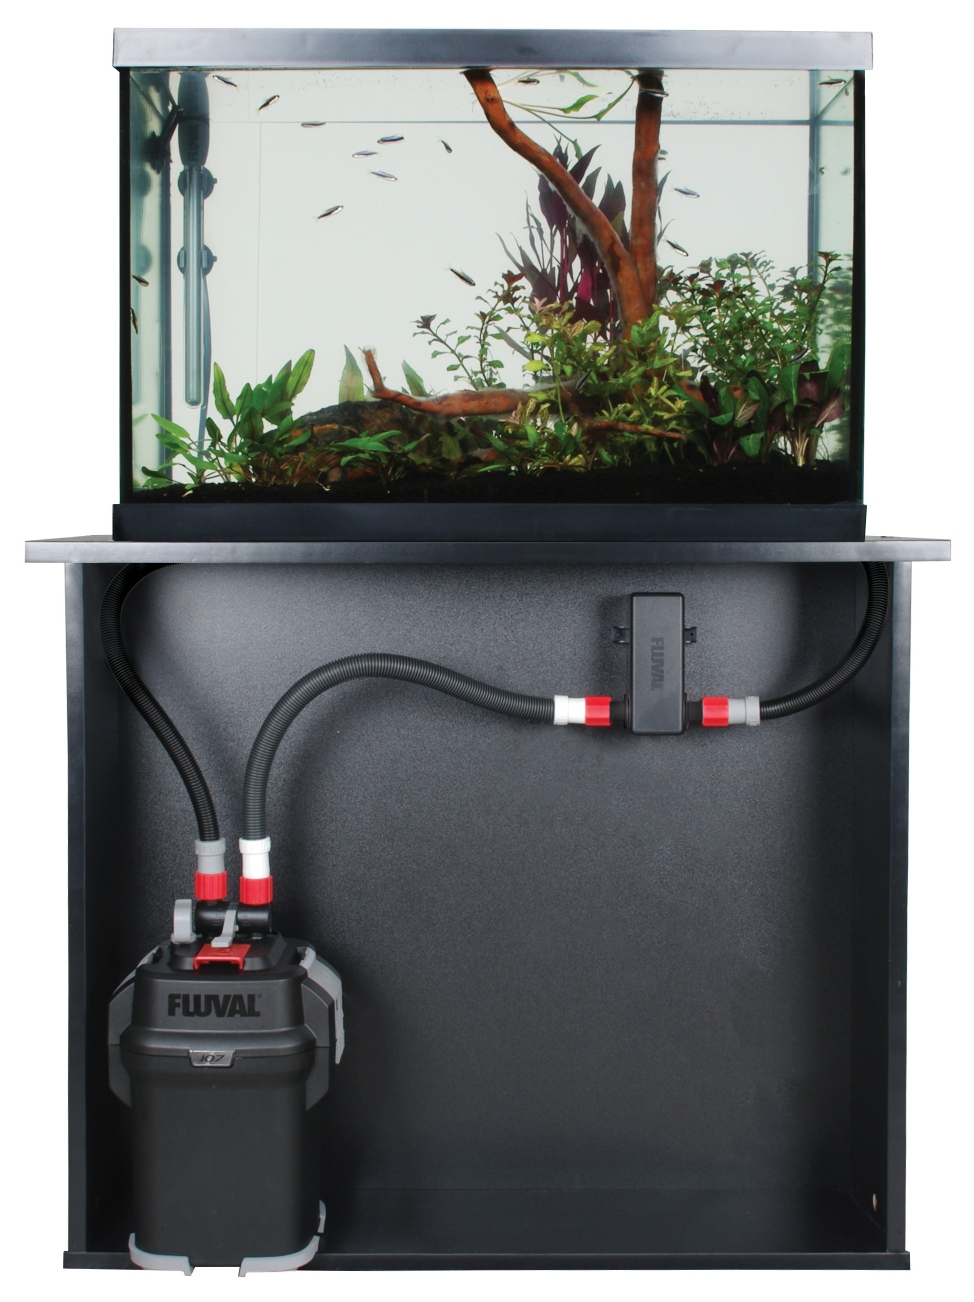 Shop Fluval UVC In-Line Clarifier